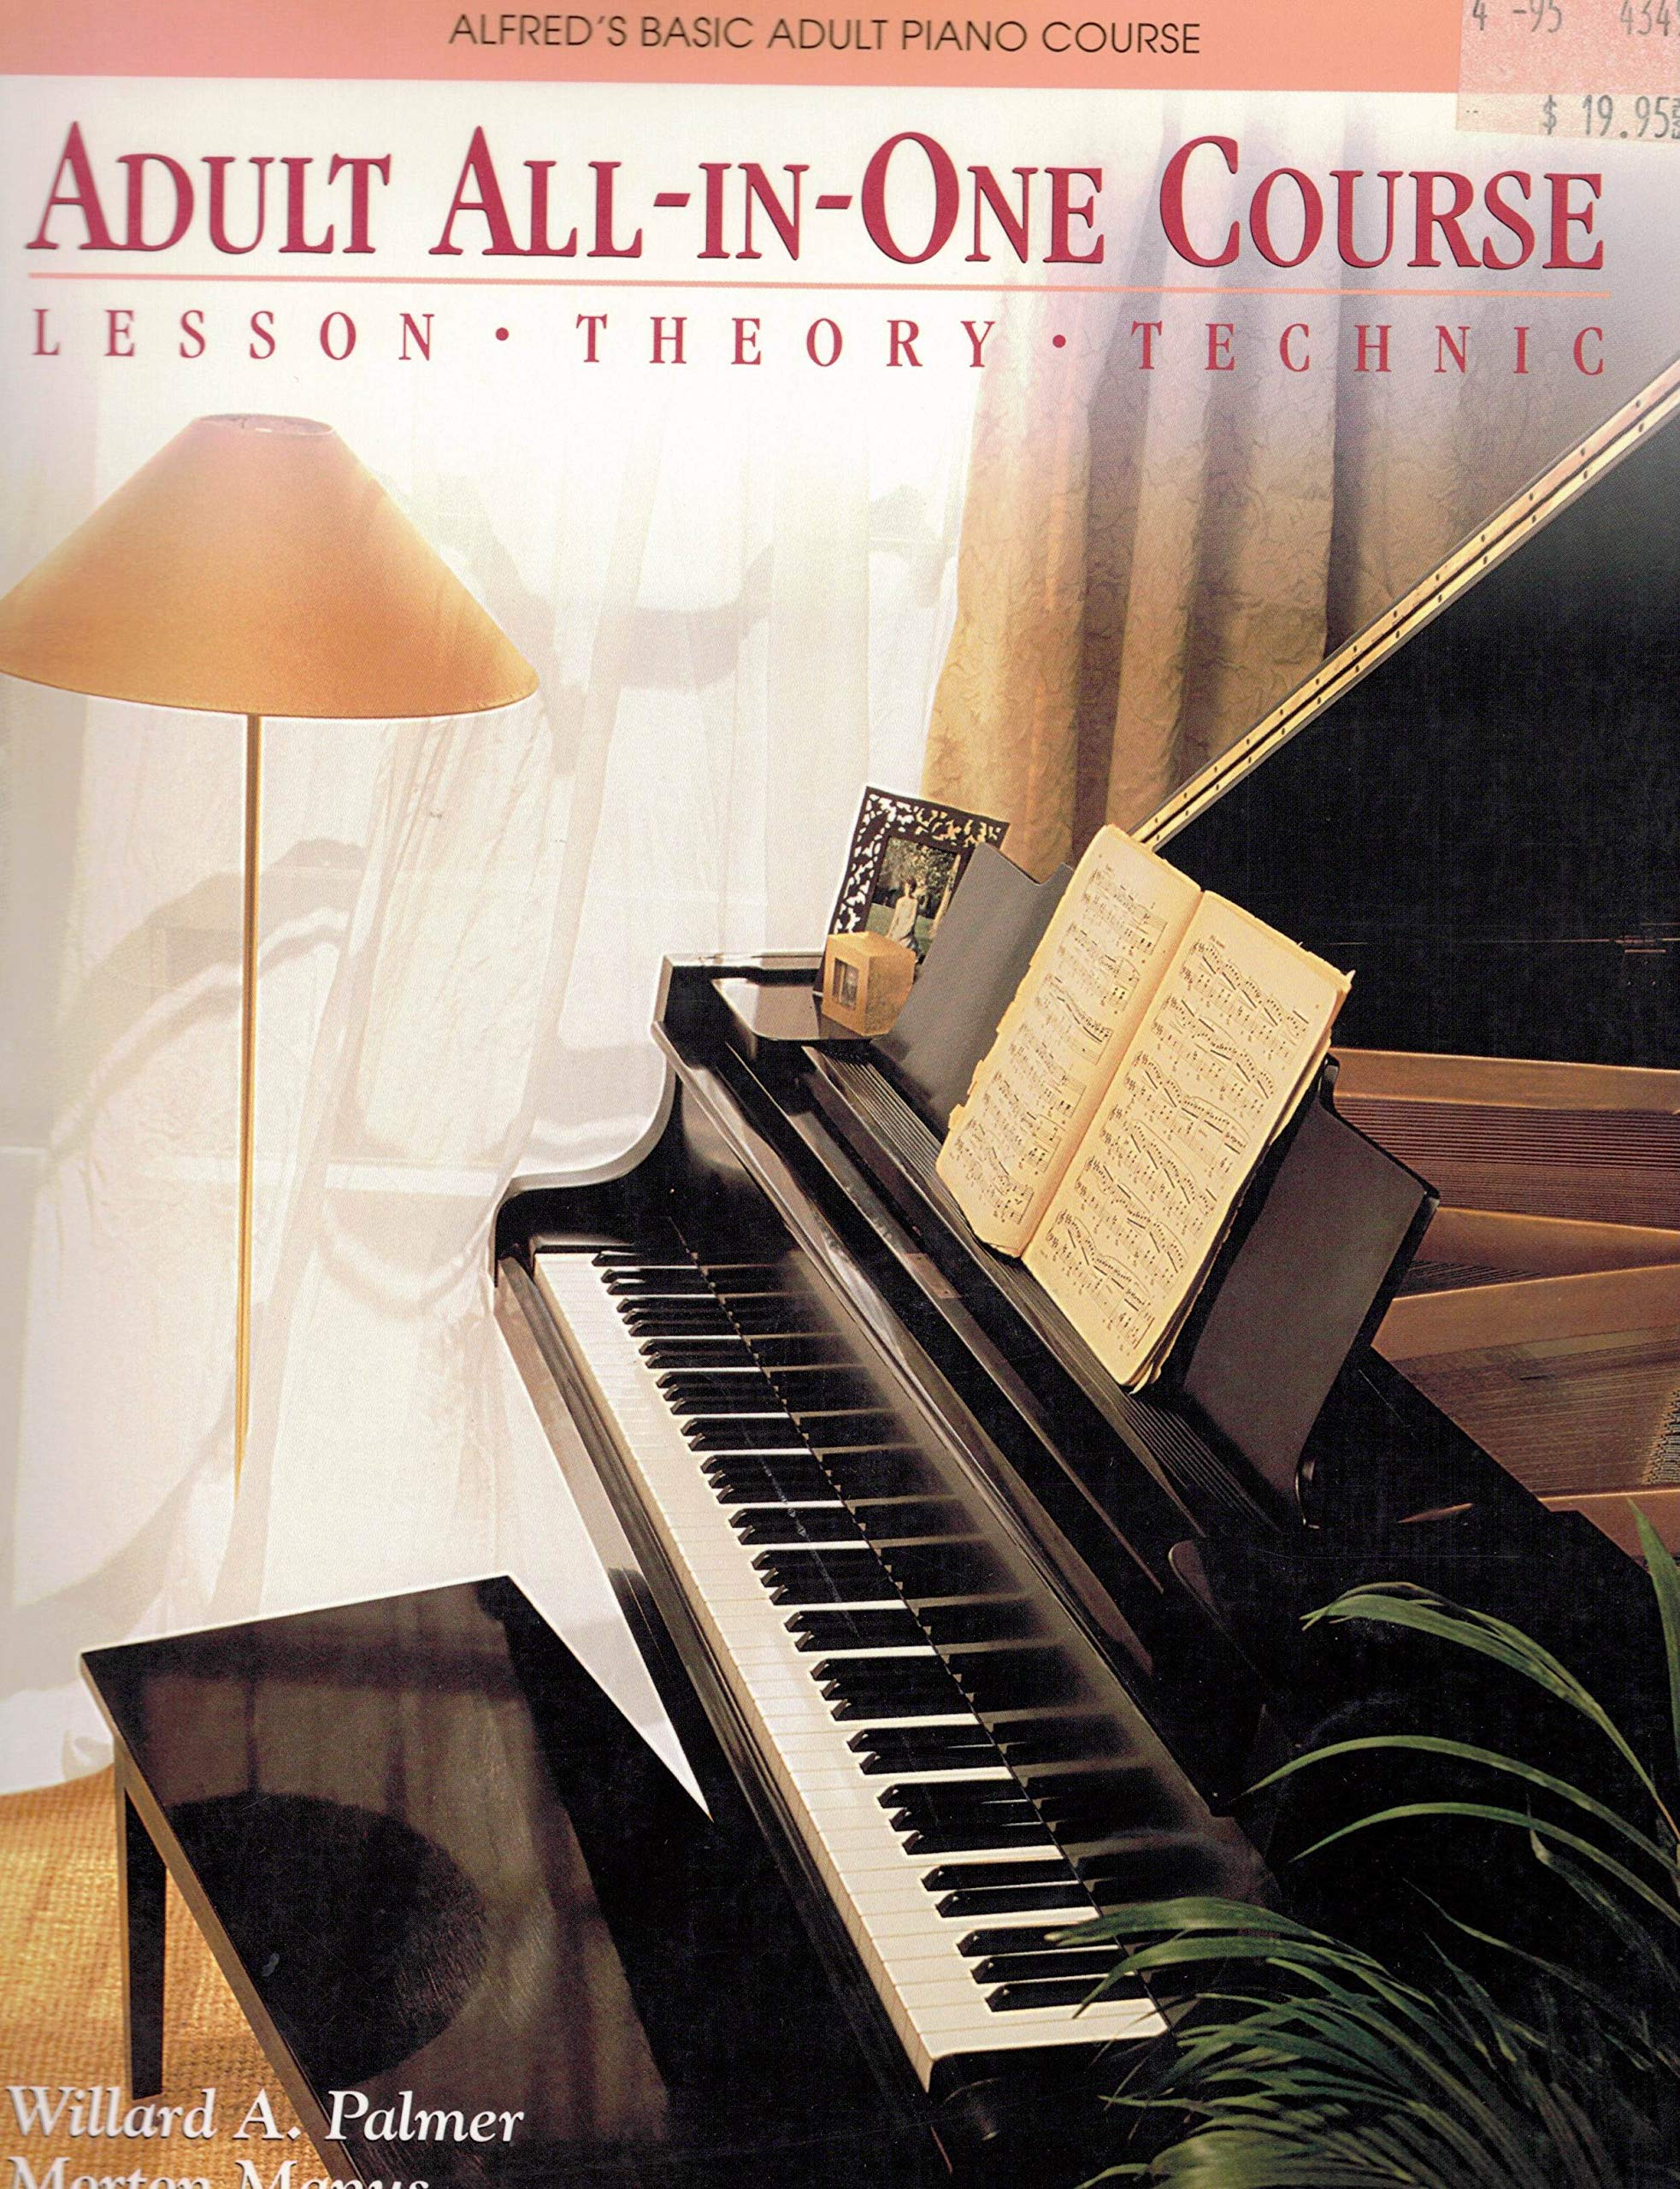 Top 10 Best alfred all in one adult piano course level 1 Reviews